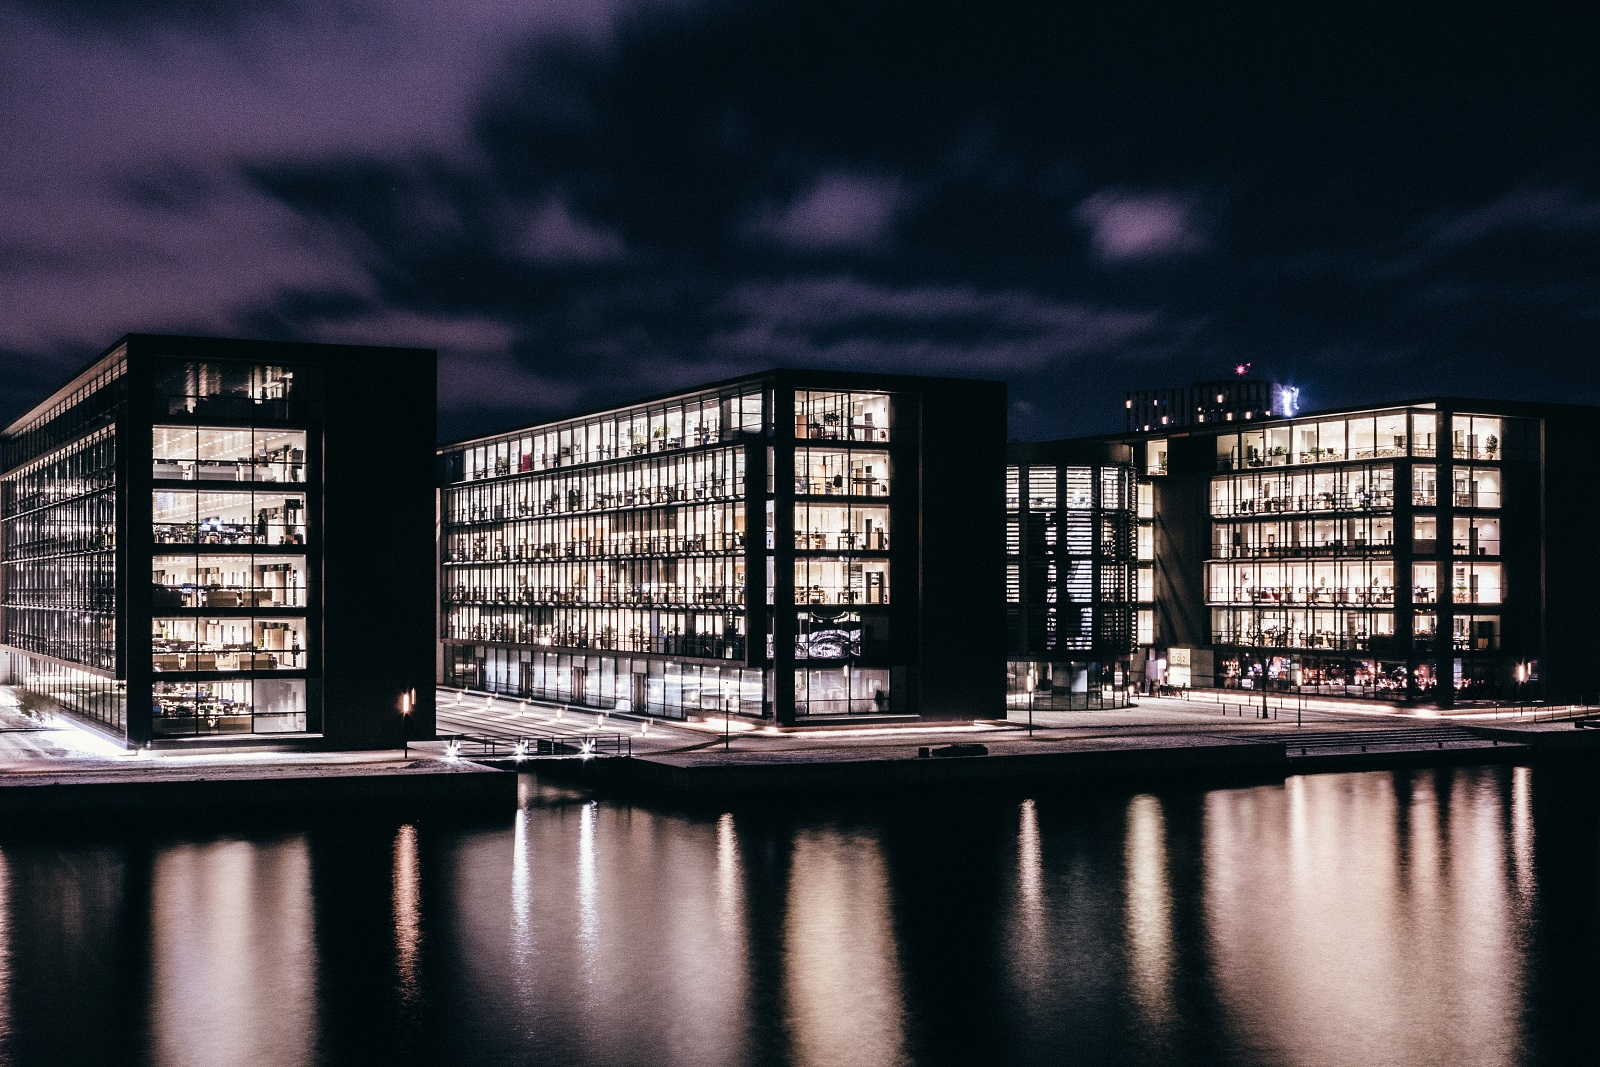 A photo of several lit buildings at night